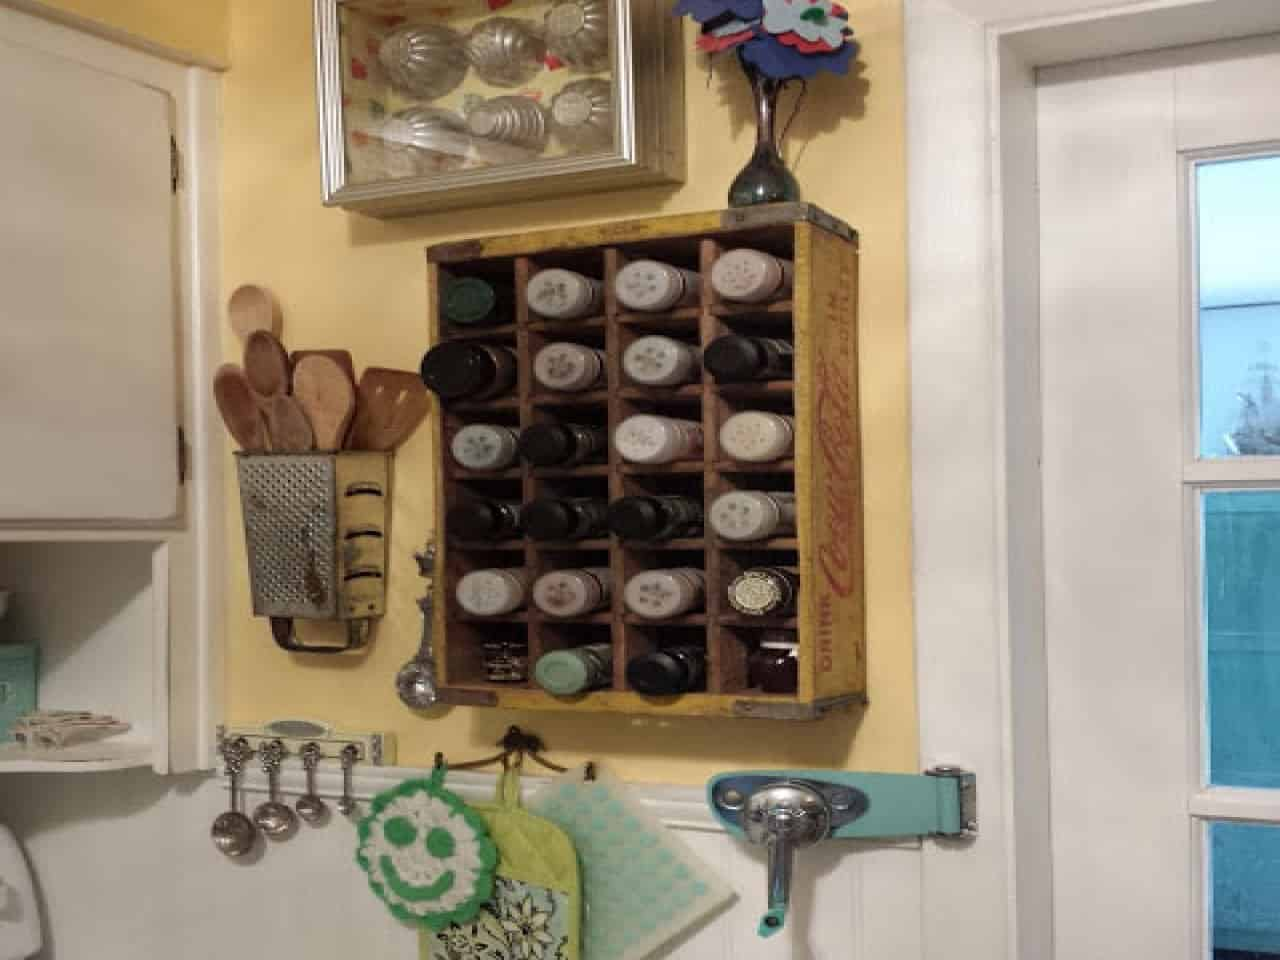 Wall mounted spice rack and grater untensil holder